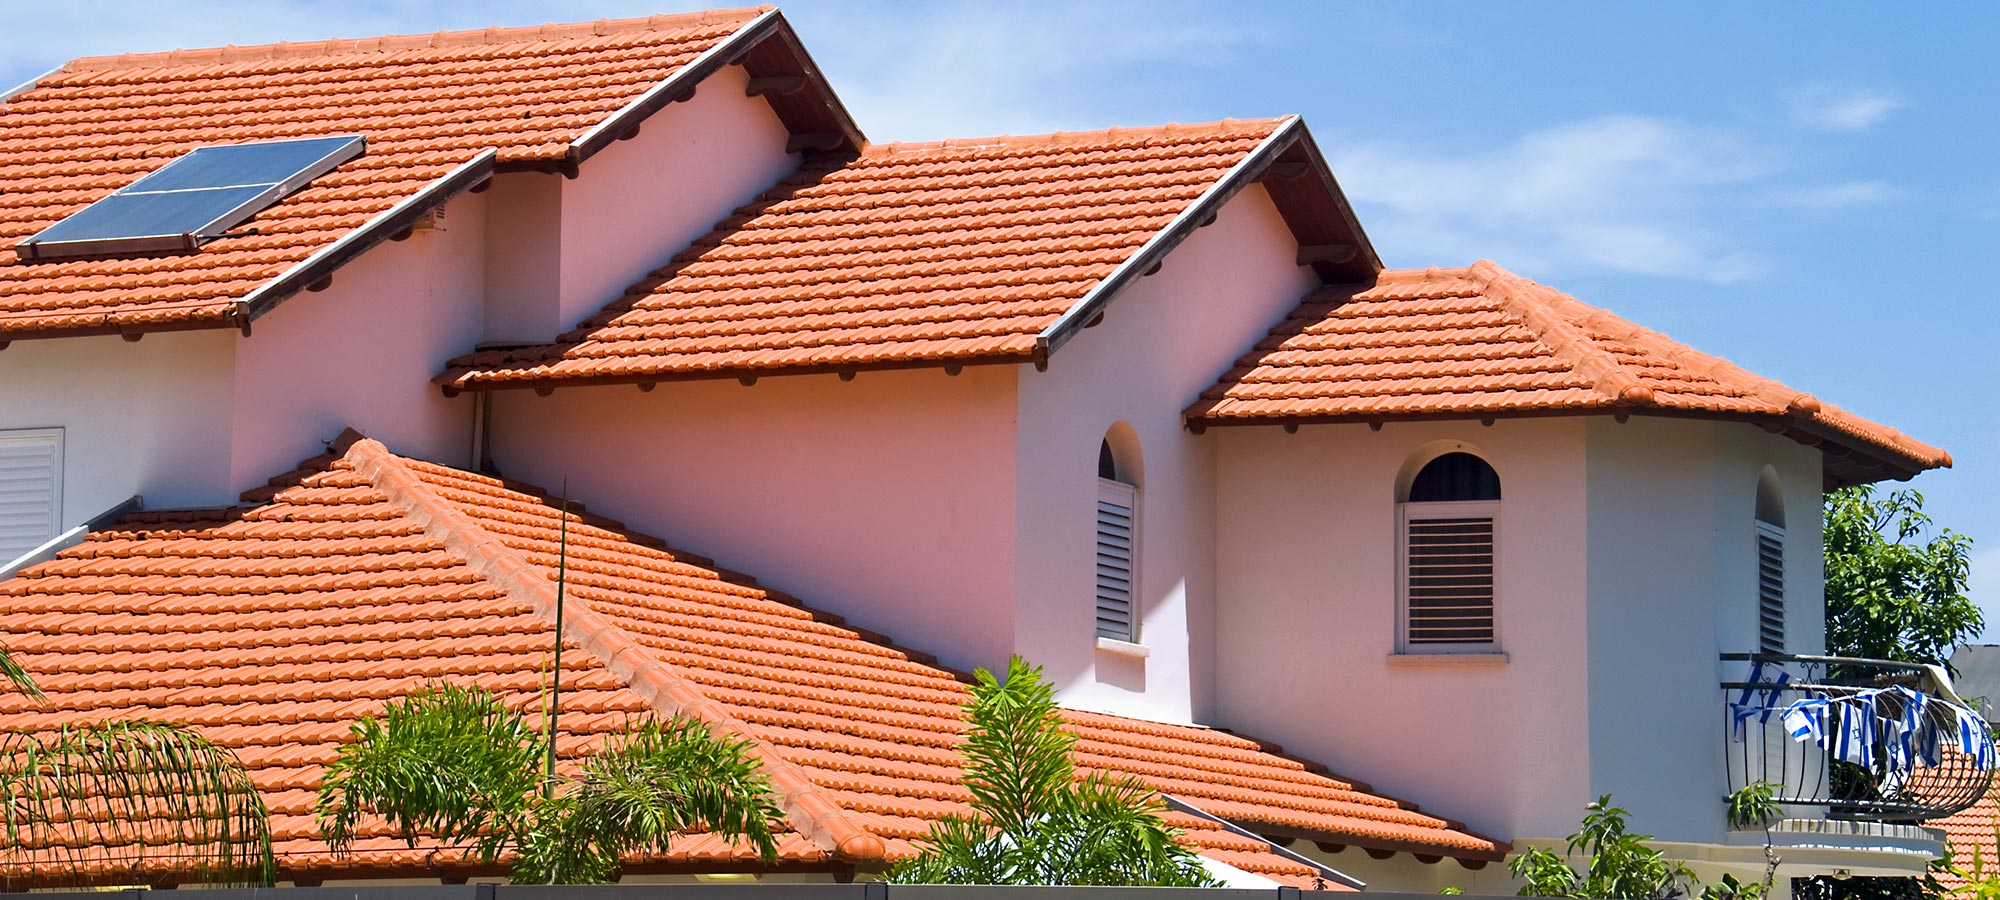 roofing west palm beach fl